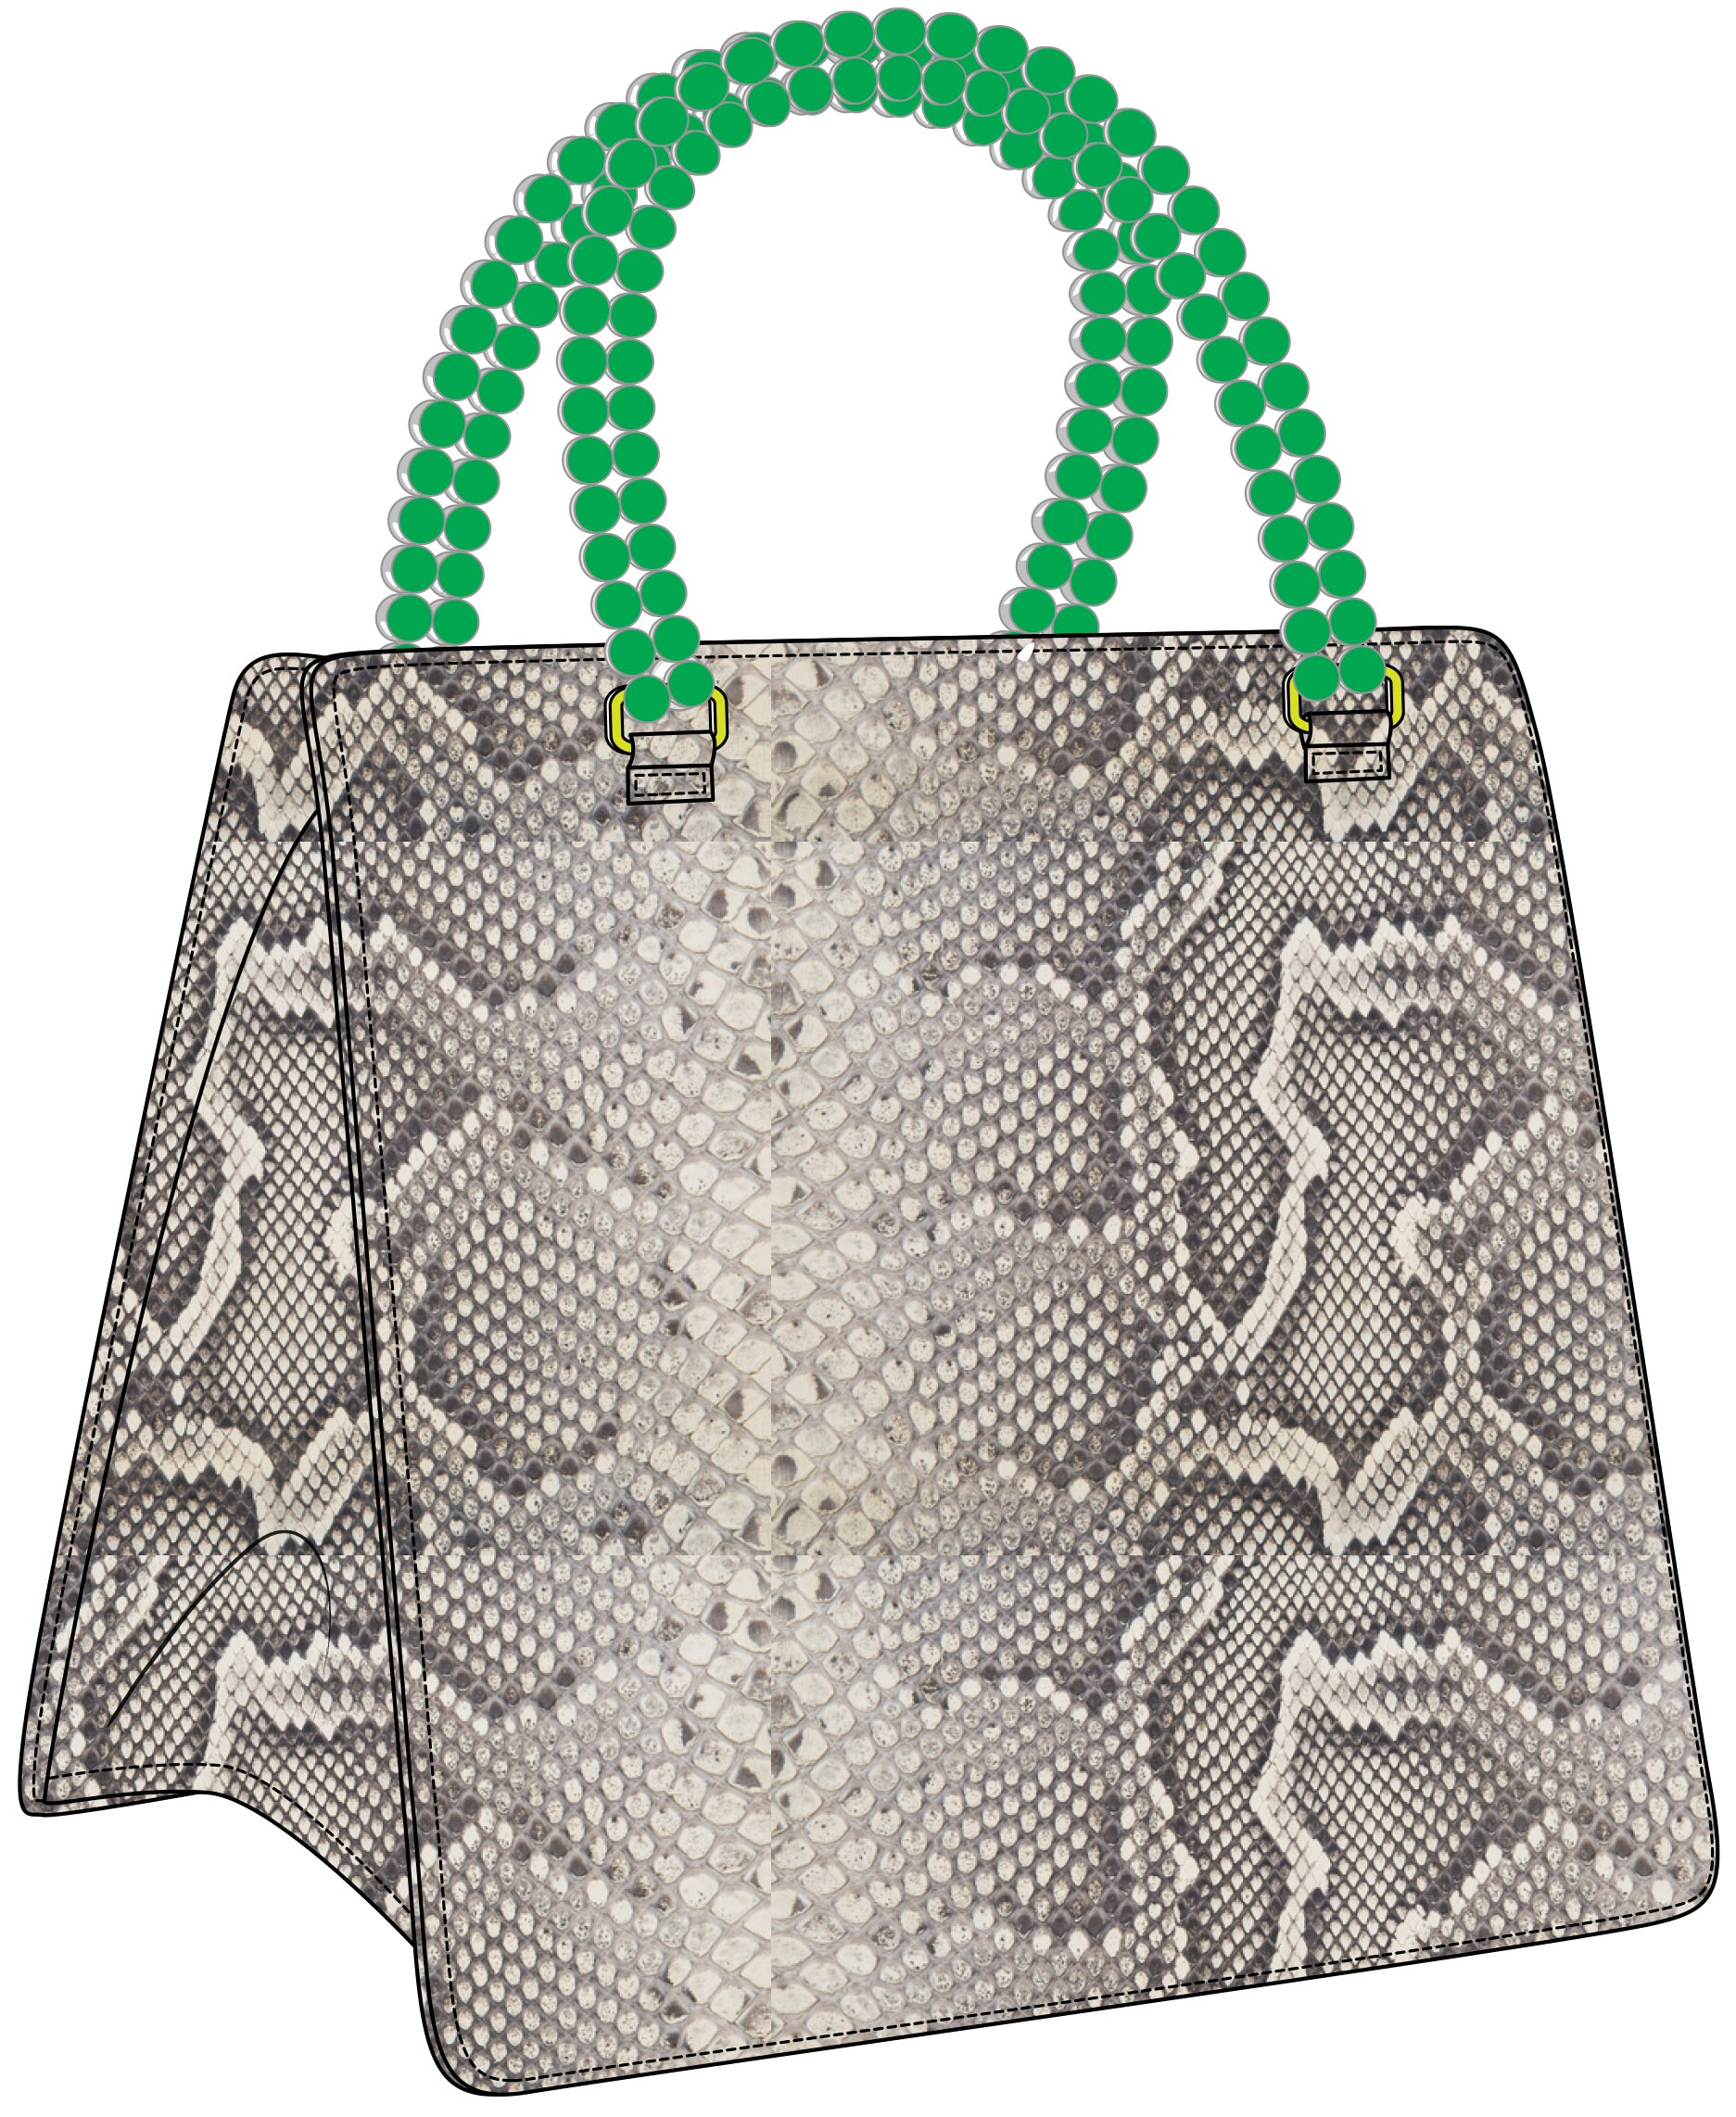 Mel Boteri's First Open Call Handbag Design Competition | Finalizing Materials 1